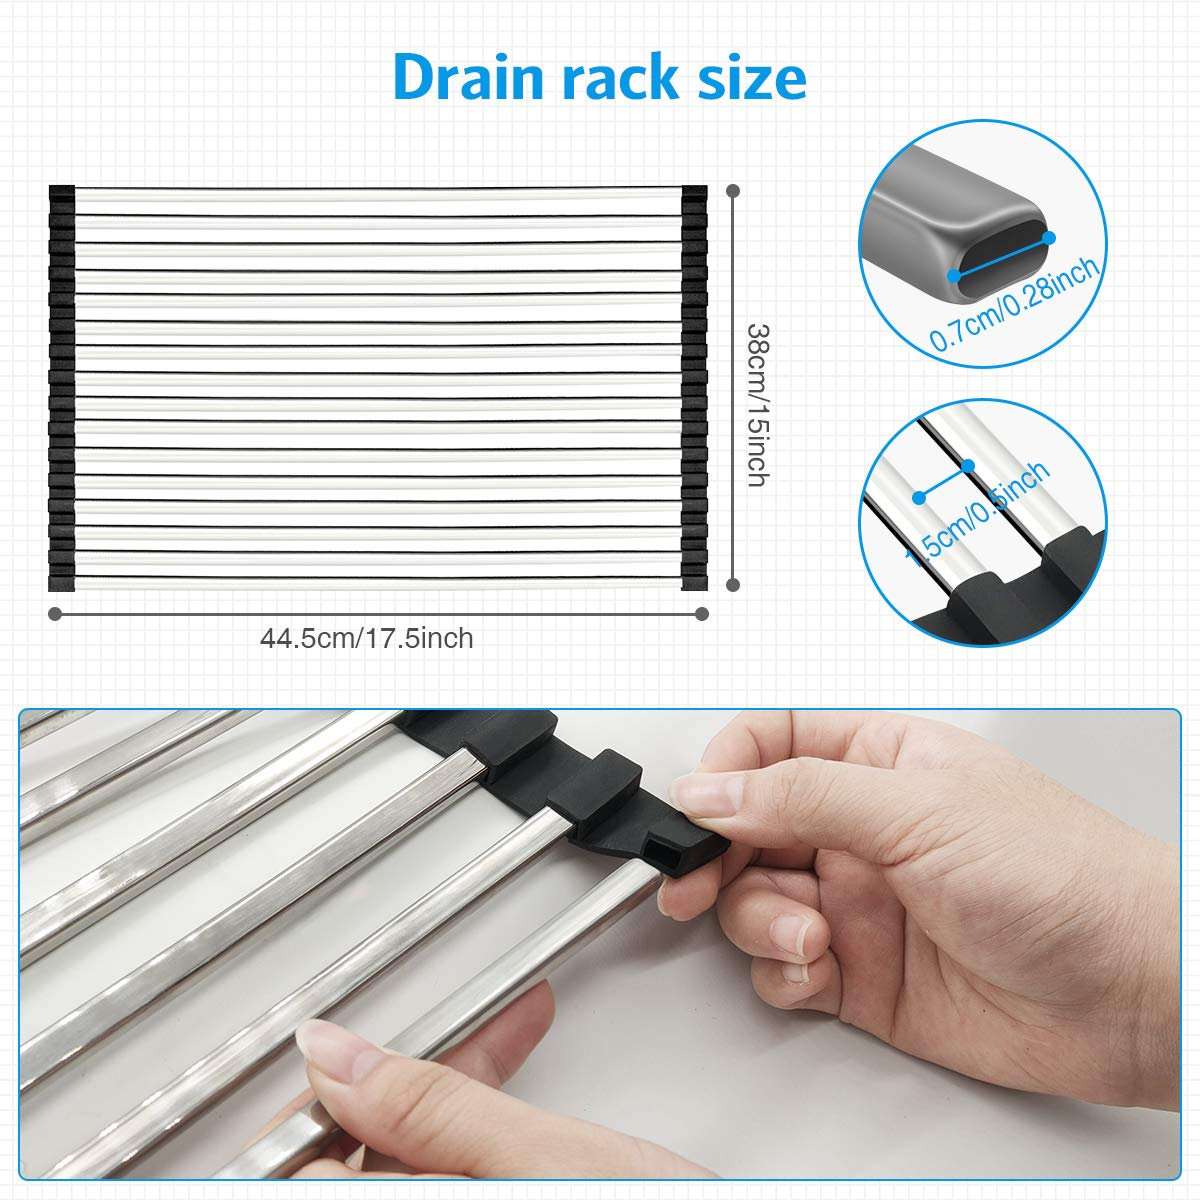 """27.5/""""- 33.5/"""" Over Sink Dish Rack Large Dish Drainer Shelf with Utensil Holder G-TING Expandable Dish Drying Rack Over the Sink Kitchen Stainless Steel Storage Rack Space Saver Display Stand"""